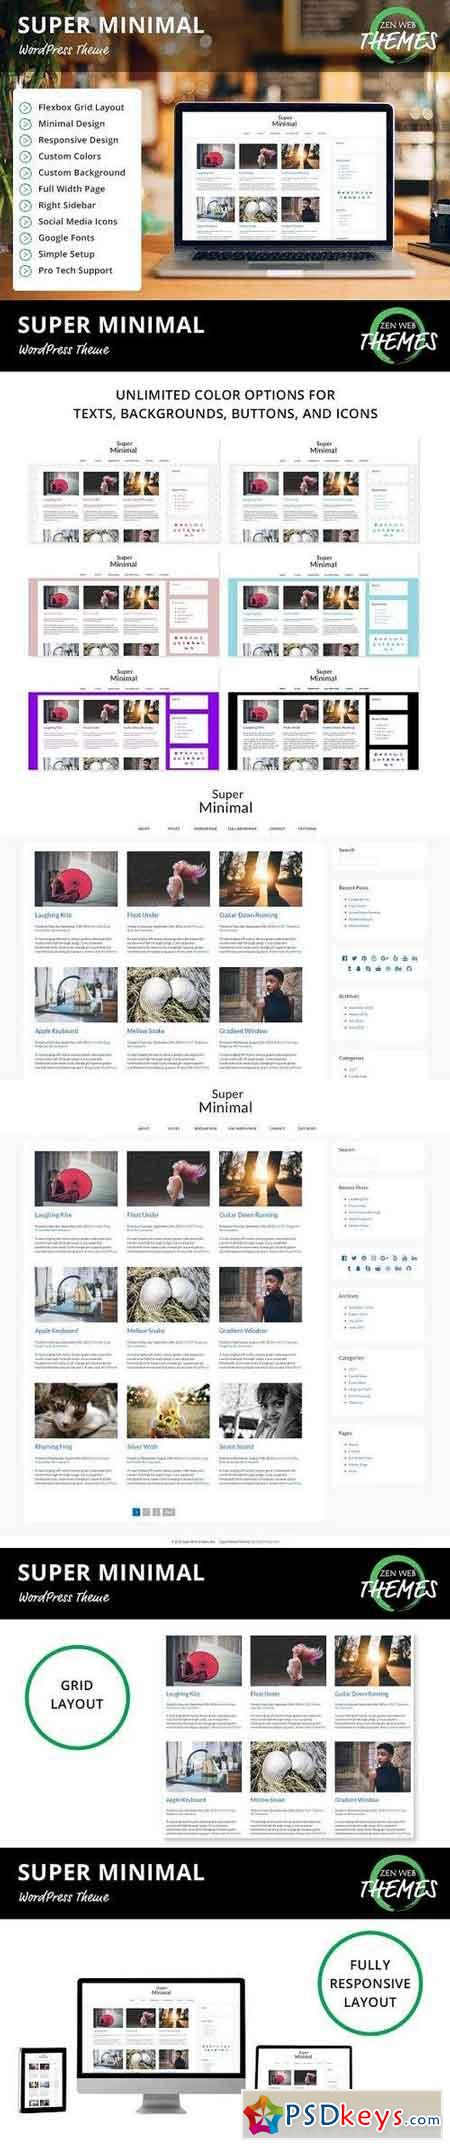 Super Minimal WordPress Theme 1099648